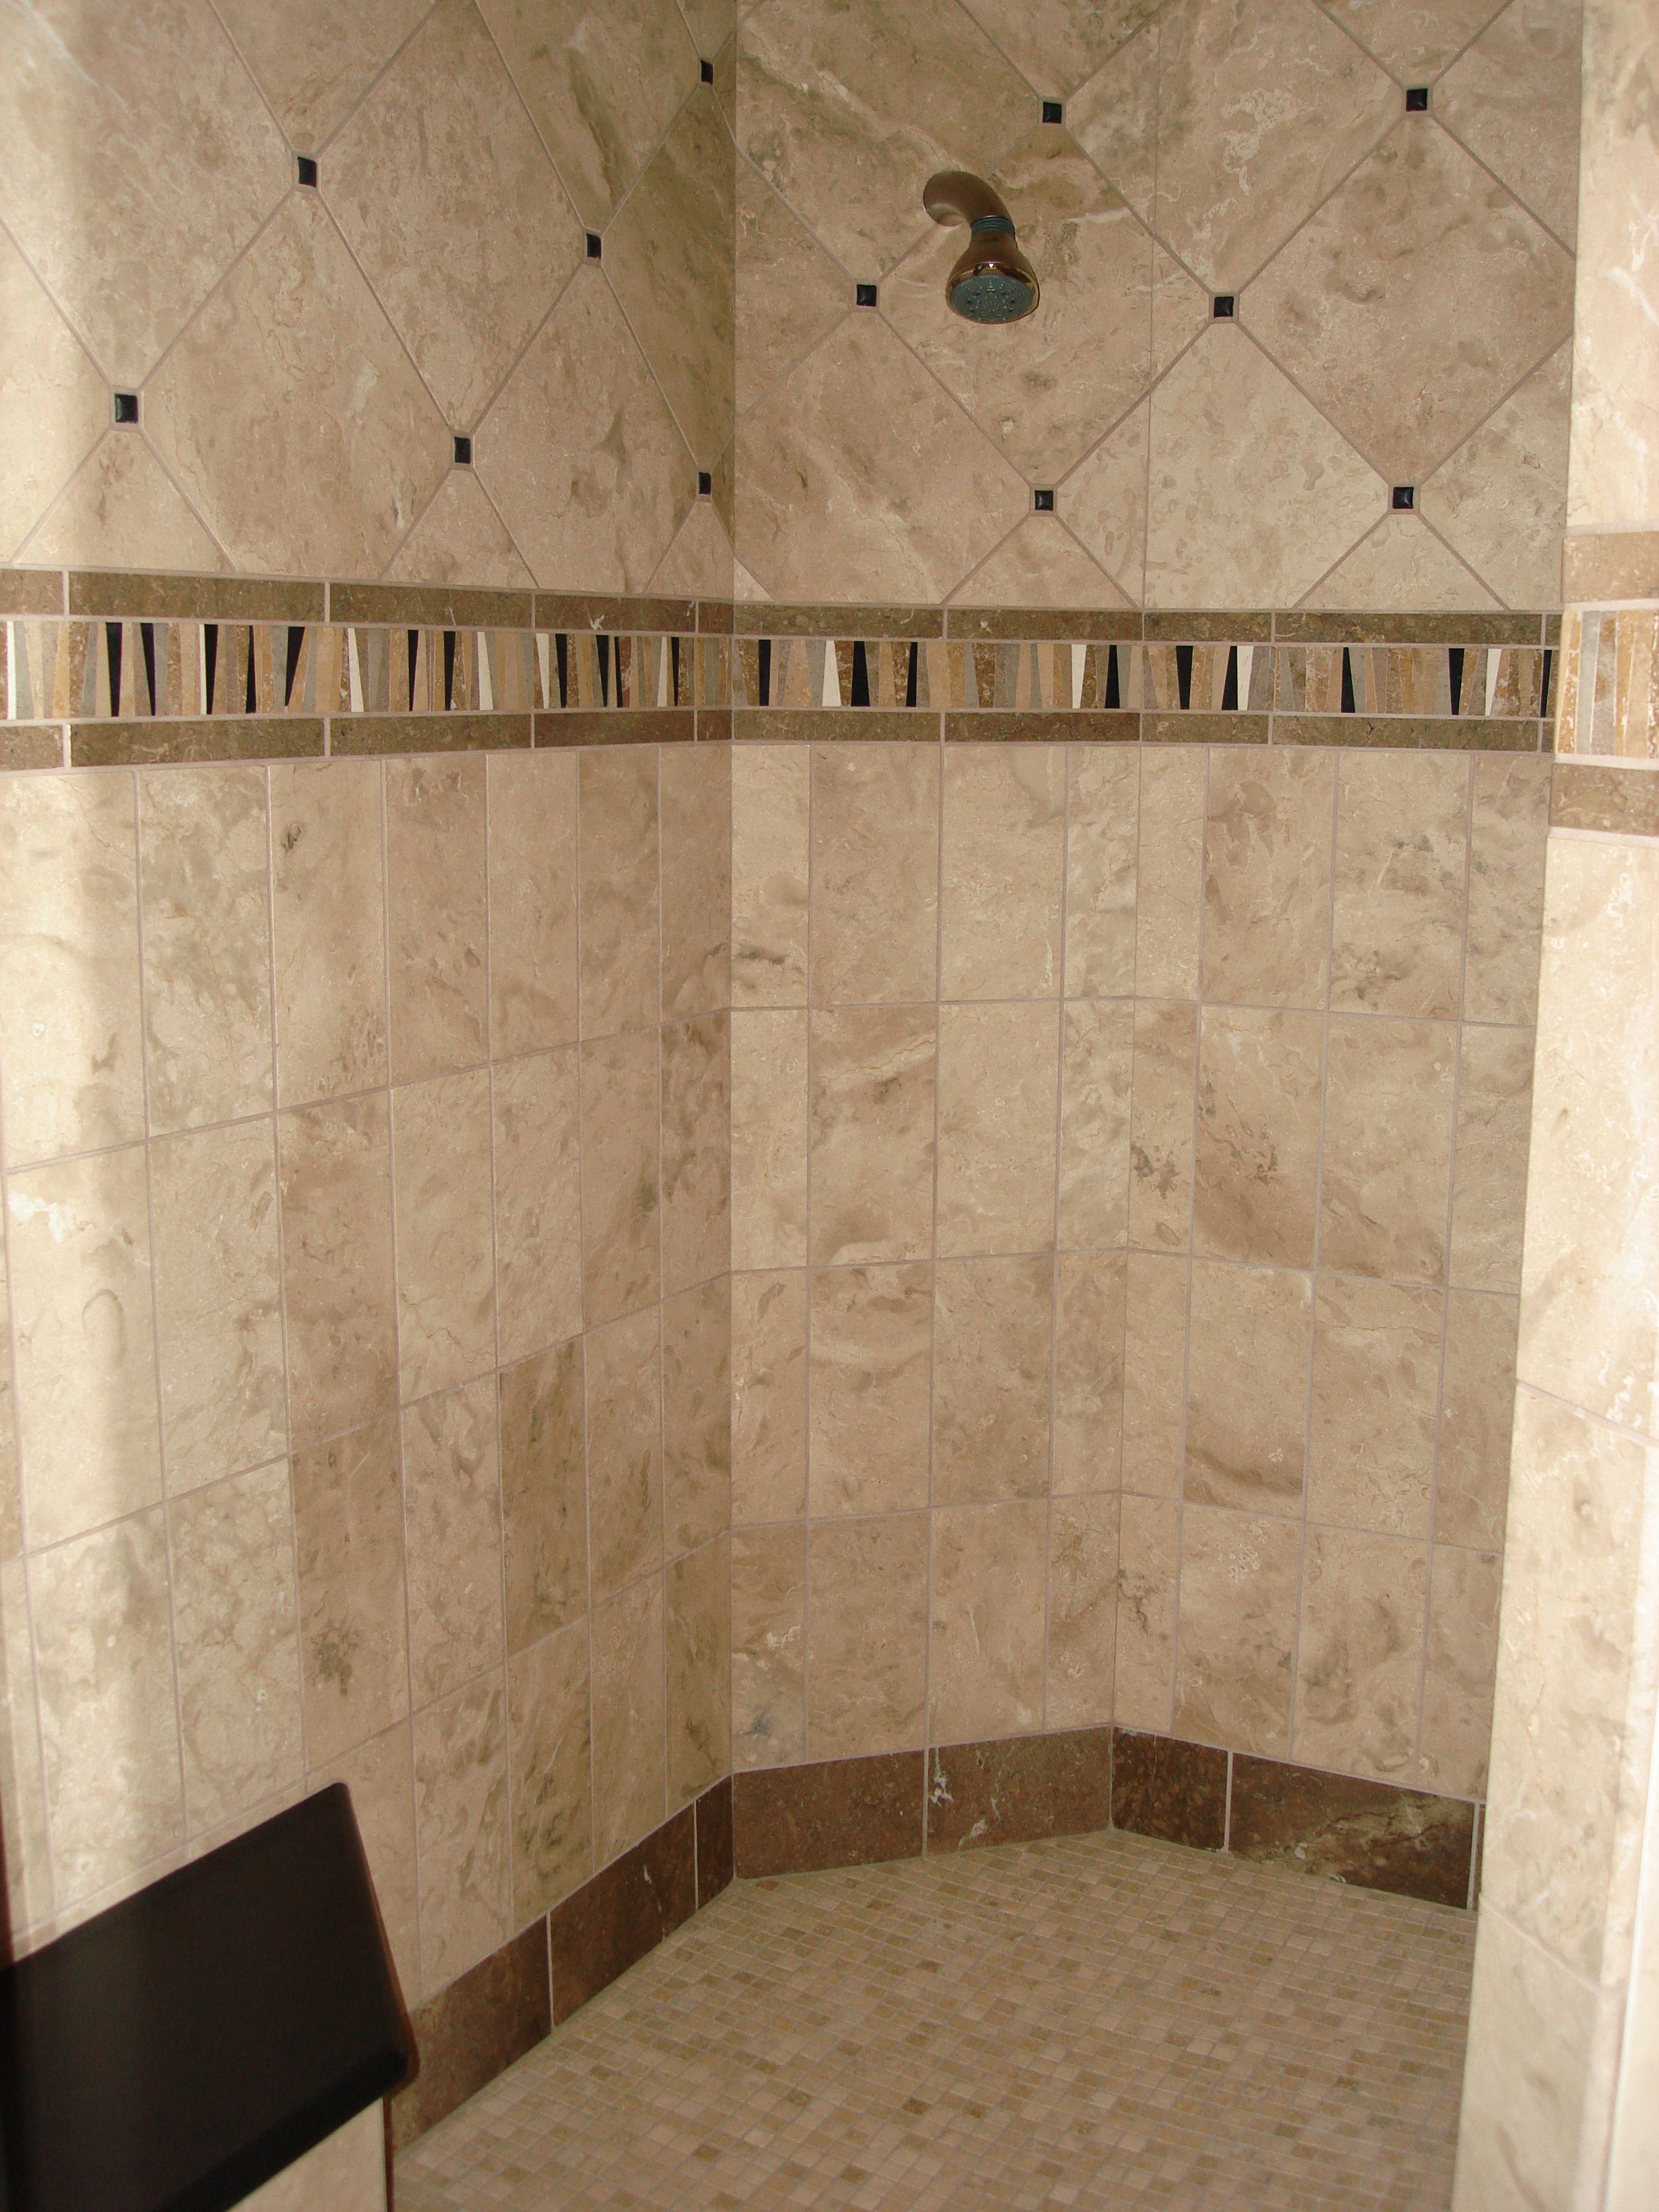 1000 images about shower tile ideas on pinterestshower tiles